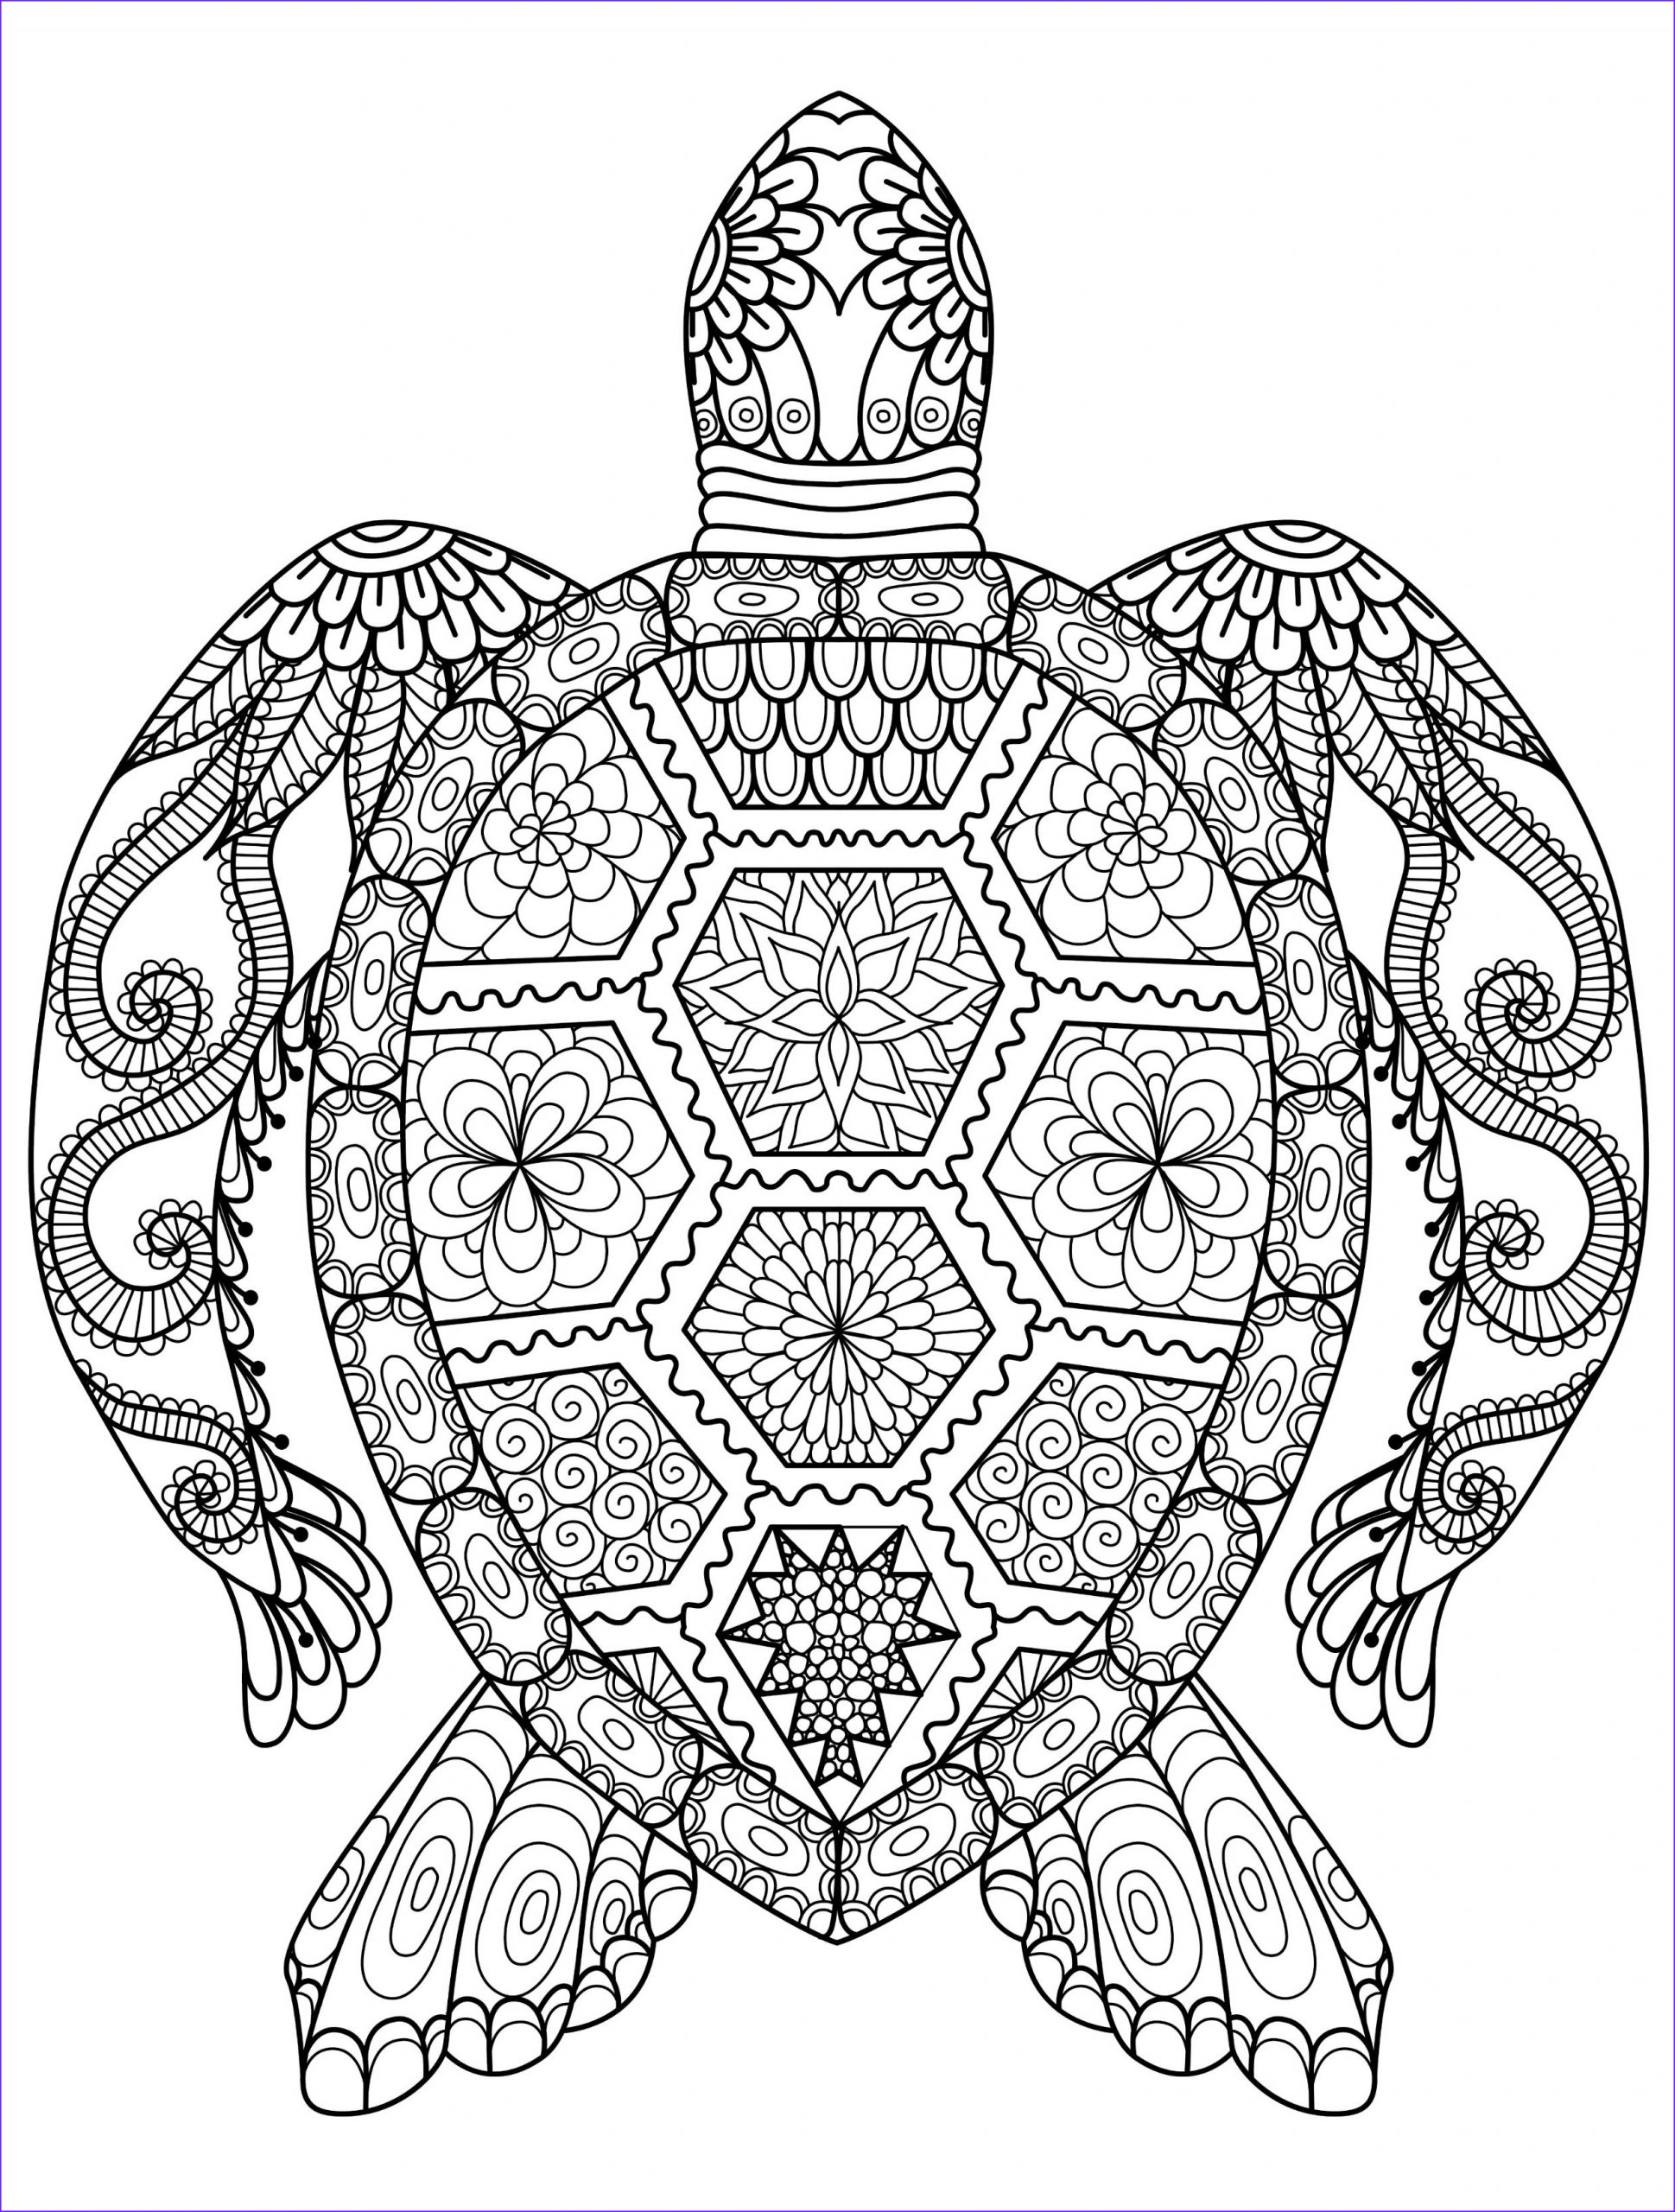 latest sloth coloring pages for adults